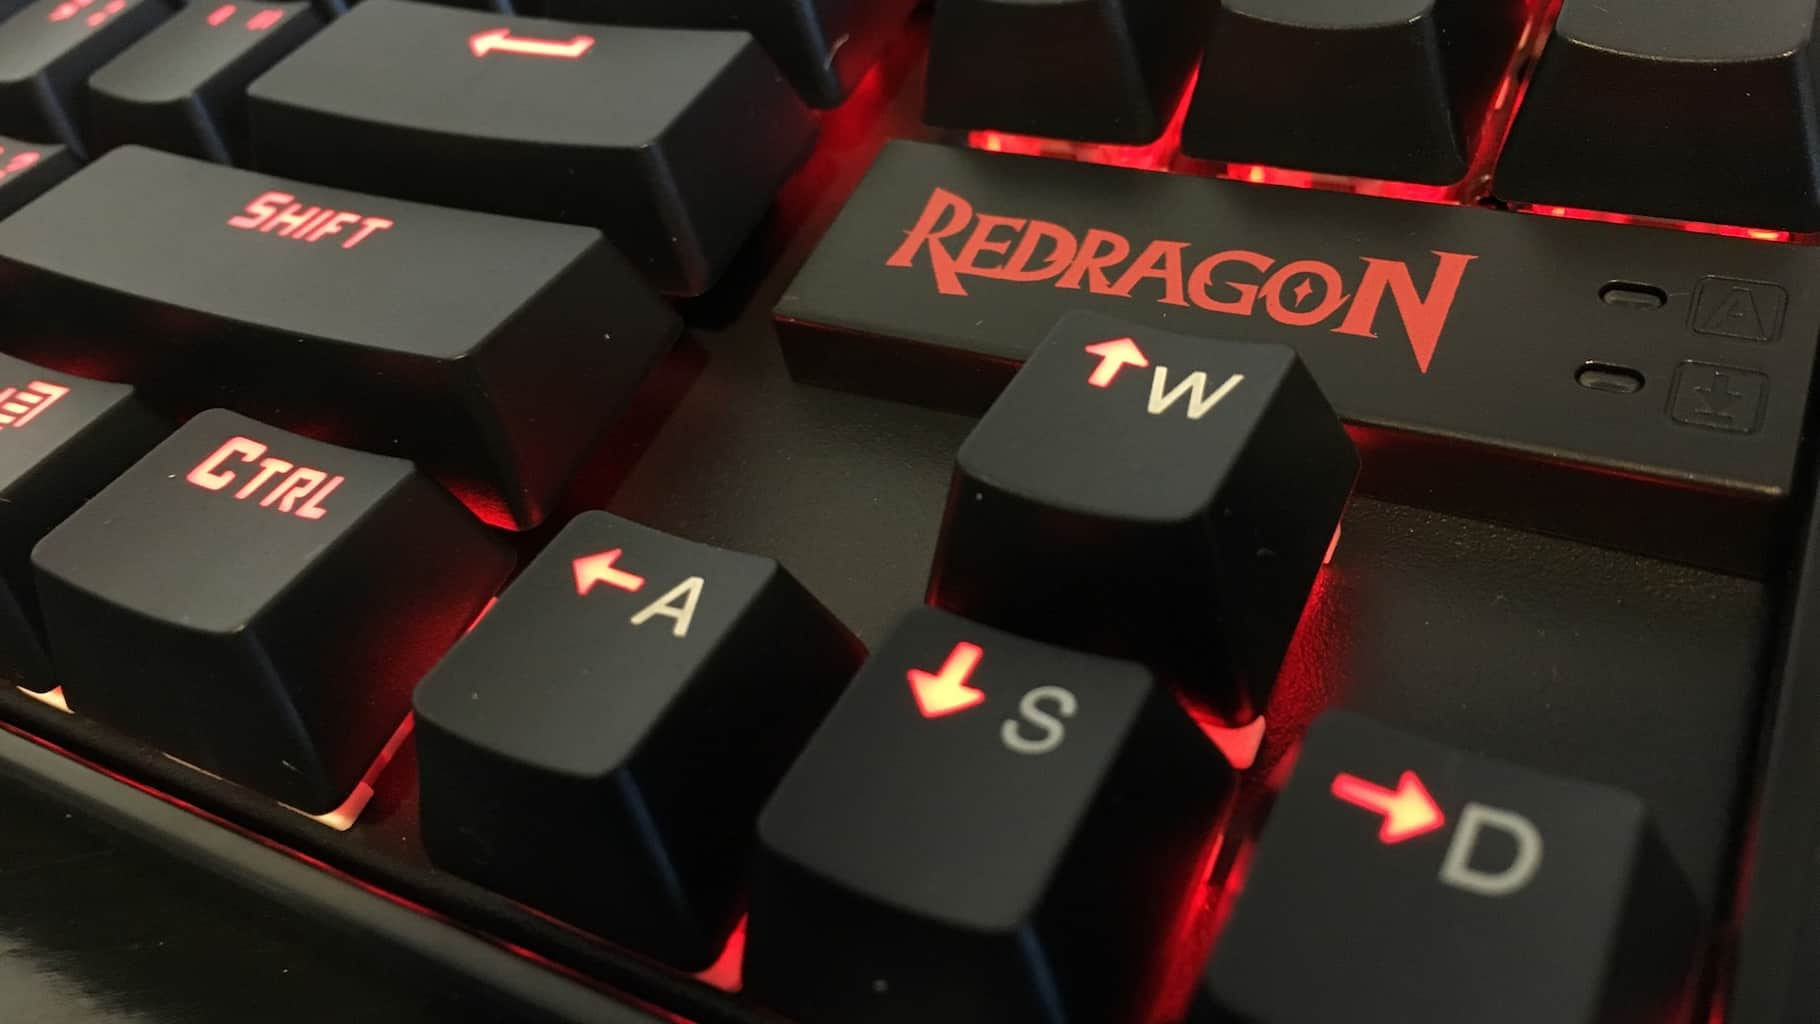 Redragon K552 KUMARA Mechanical Gaming Keyboard Review